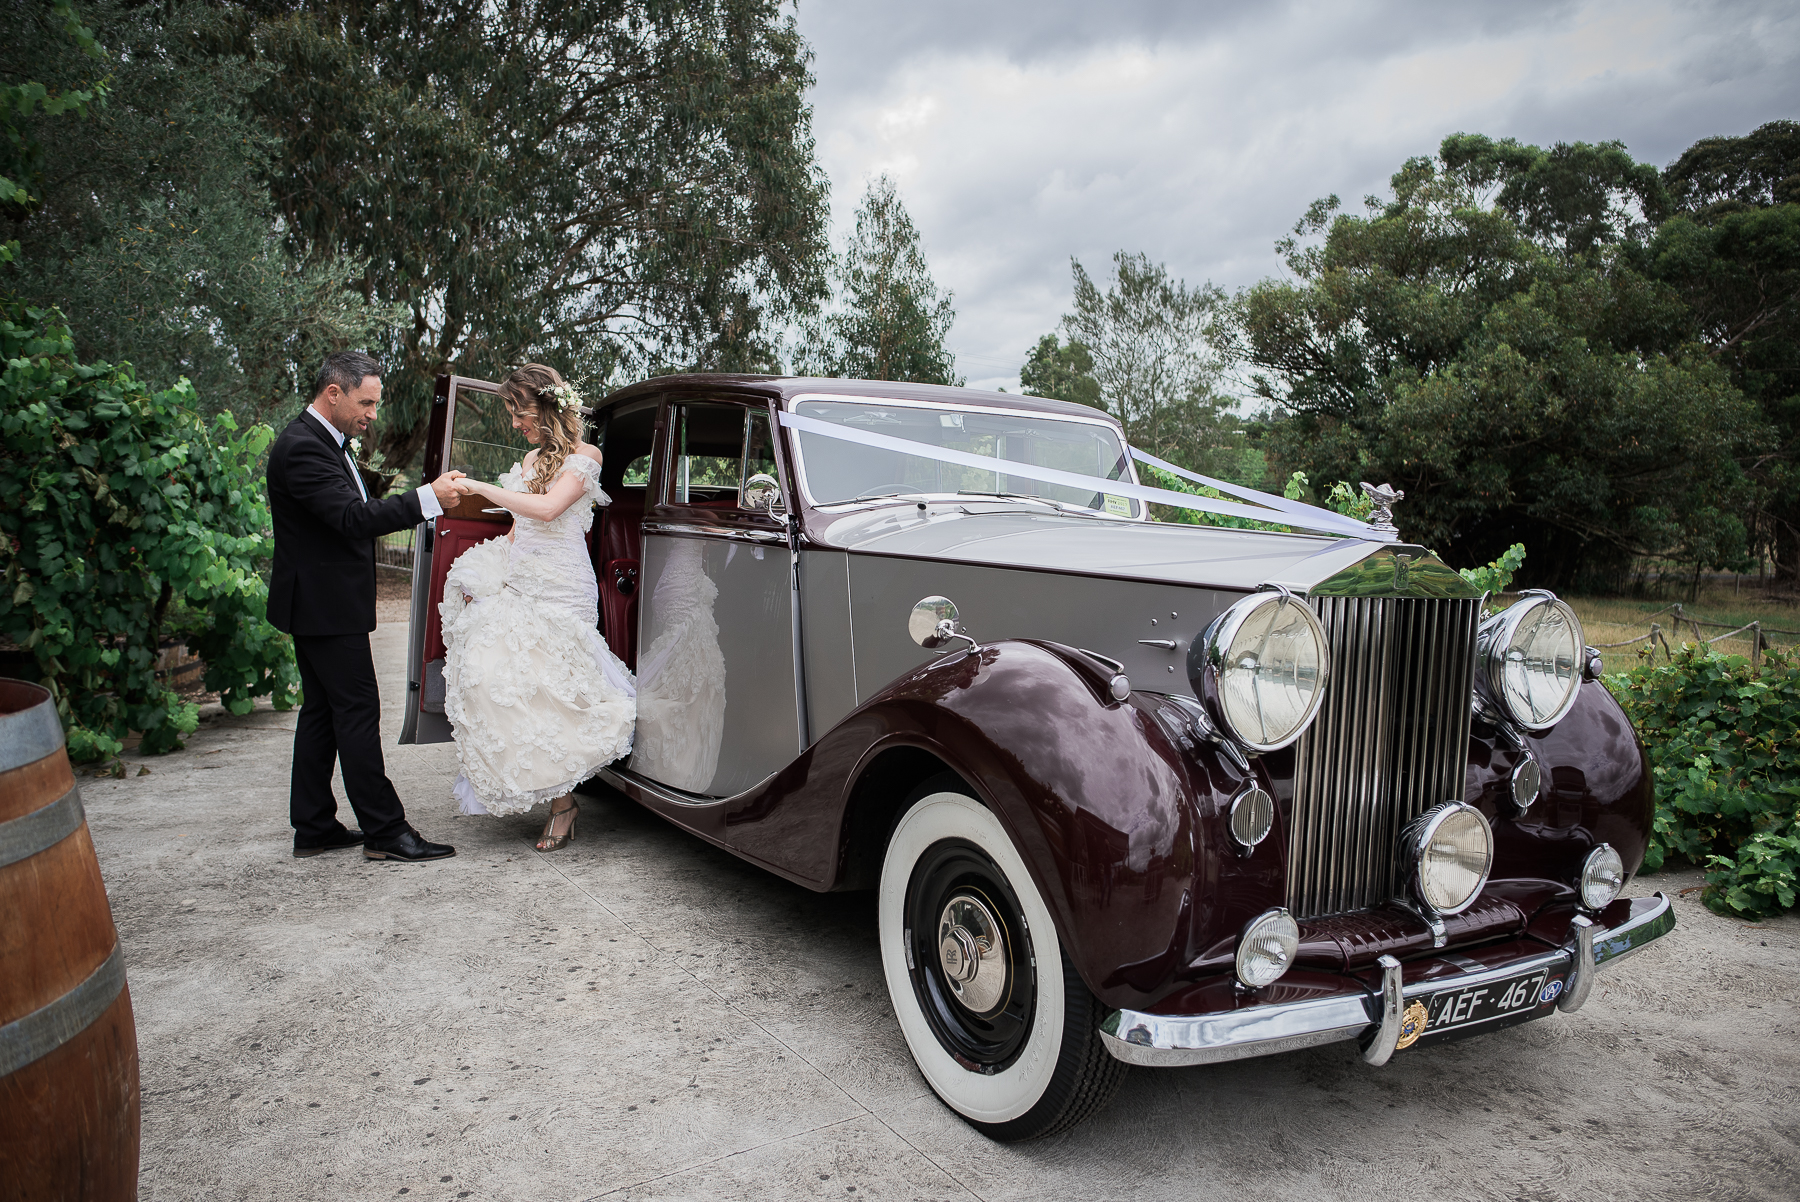 Wedding Transport Melbourne Triple R Luxury Car Hire 1 Wedding